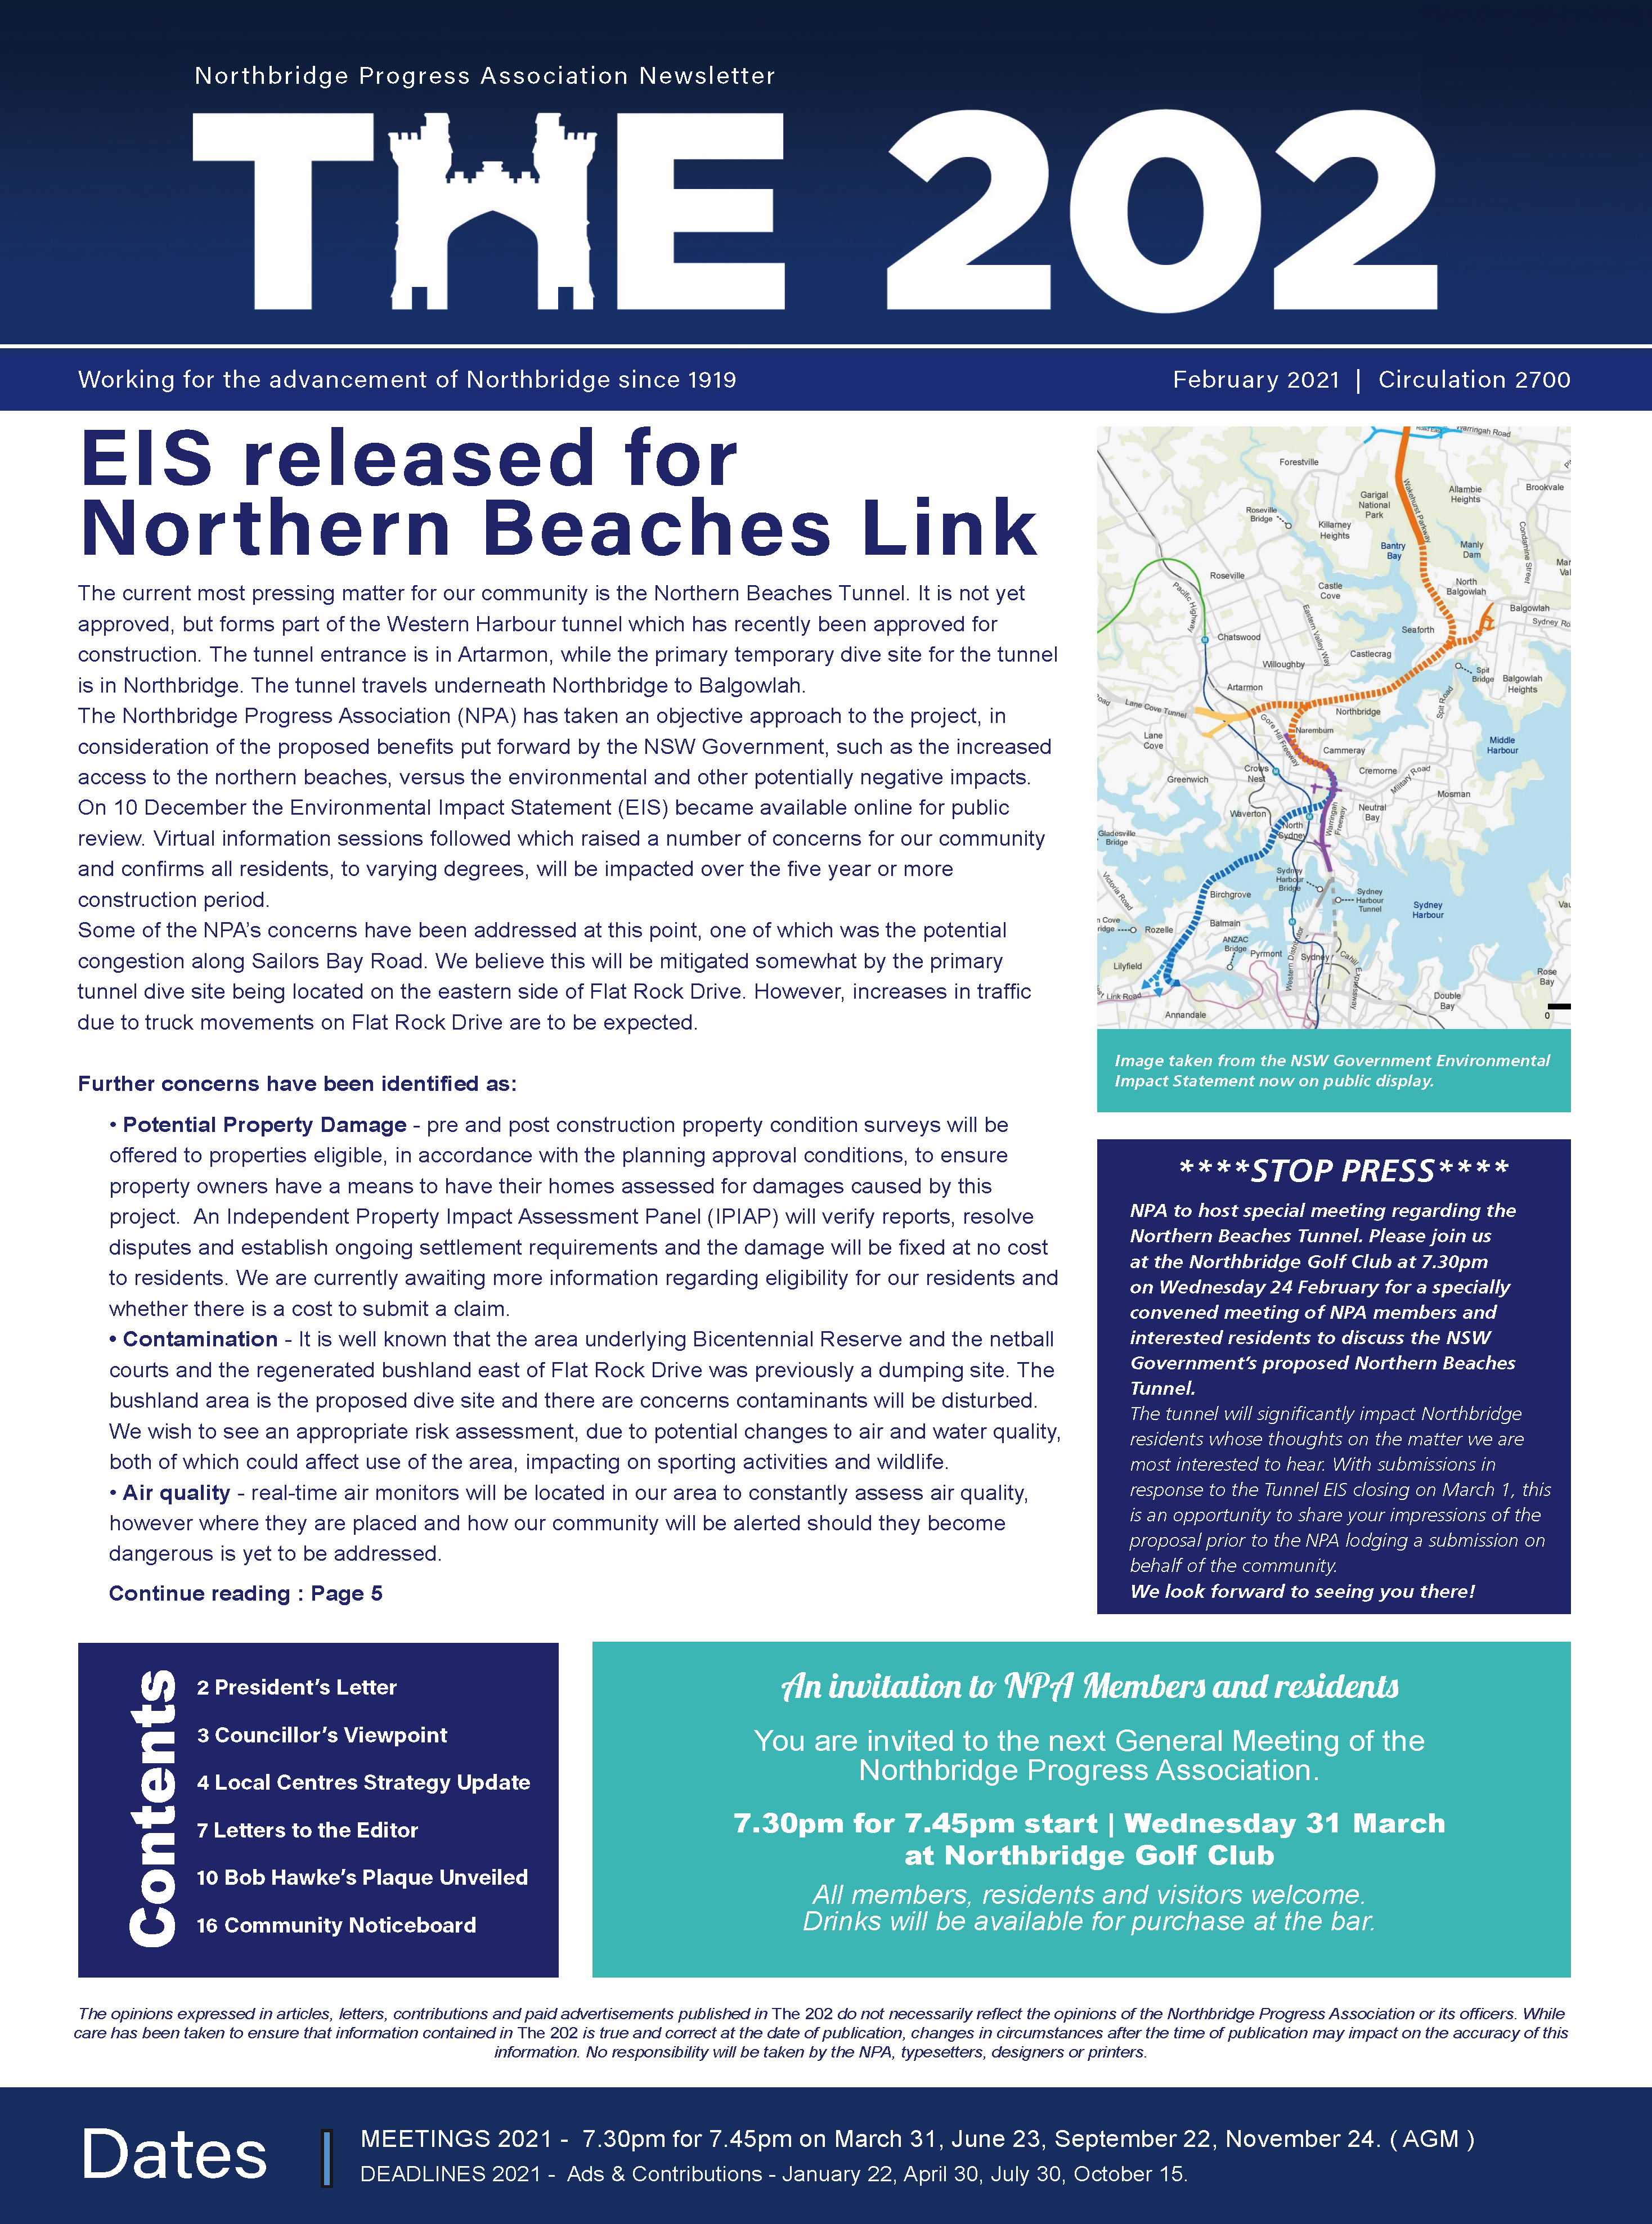 click to download February 2021 issue of The 202